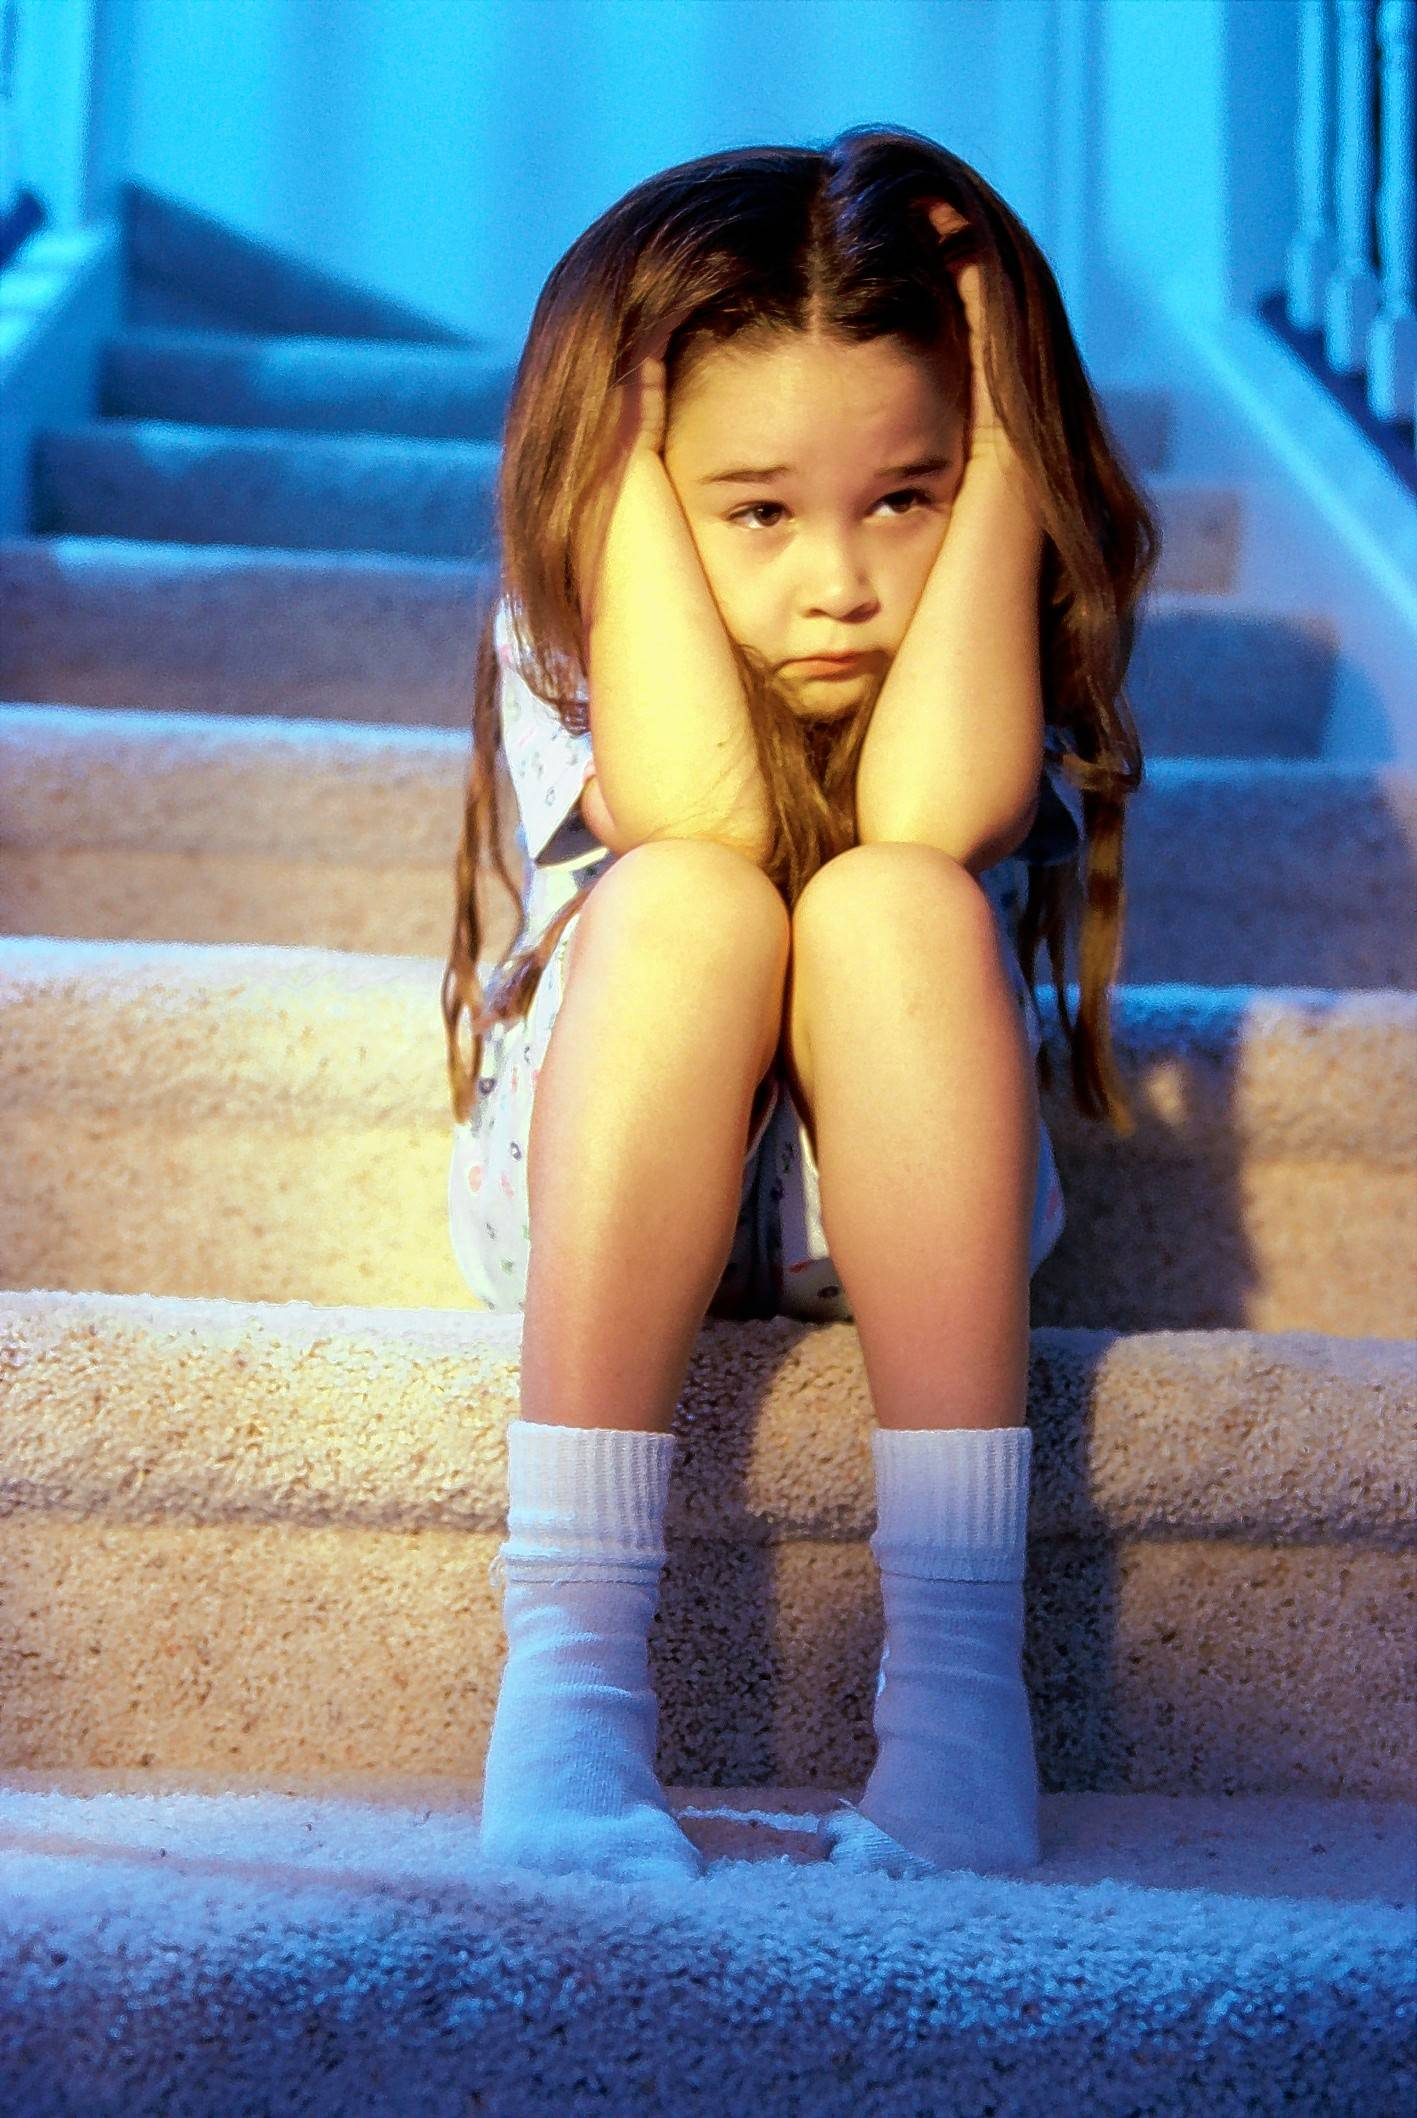 Anxious kids are supersensitive and react to new activities as if they were threatening.